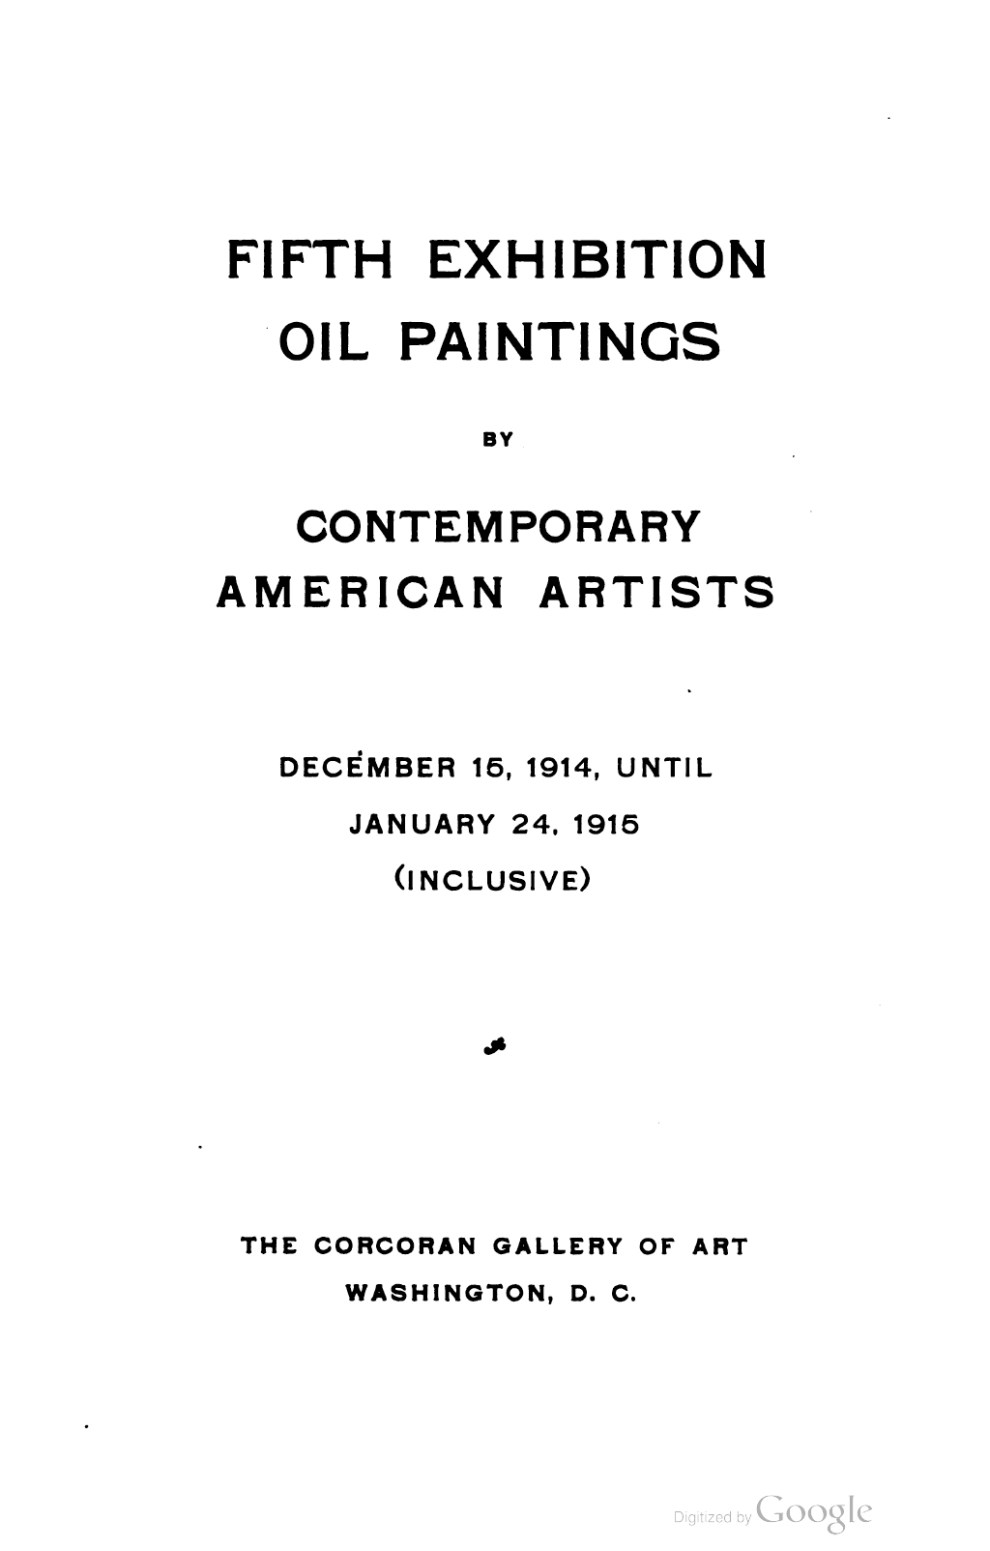 """1915-1916 Corcoran Gallery of Art, Washington, DC, """"Fifth Annual Exhibition of Oil Paintings by Contemporary American Artists"""", December 14, 1915 – January 24, 1916"""